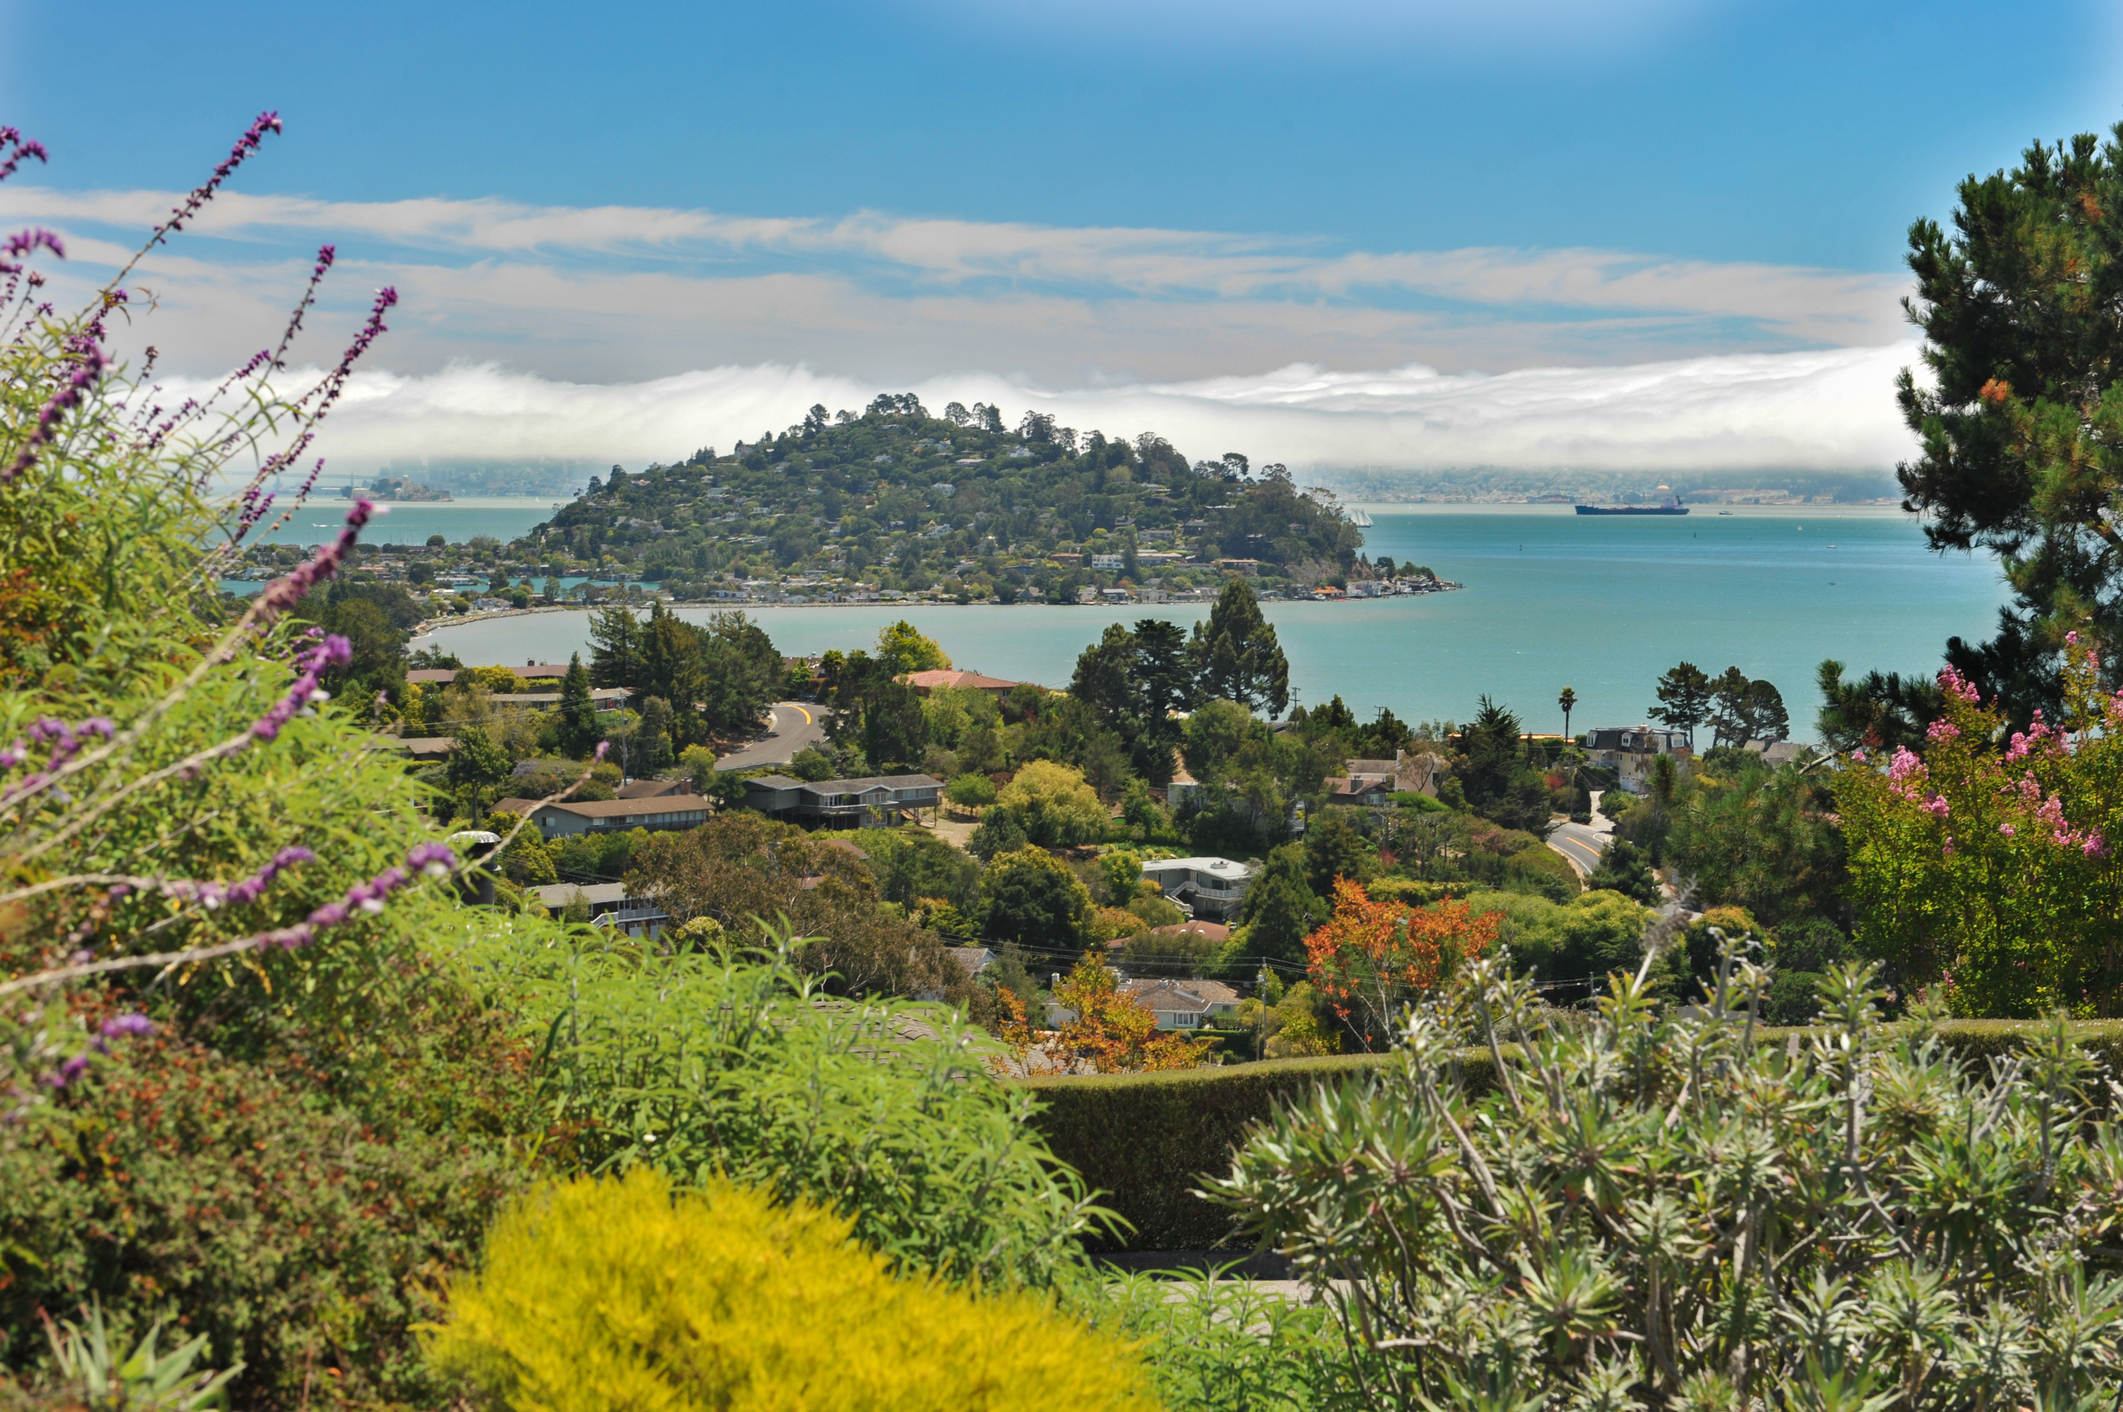 Wealthy peninsula community with jaw-dropping views and a buttoned-up, old-school California vibe.